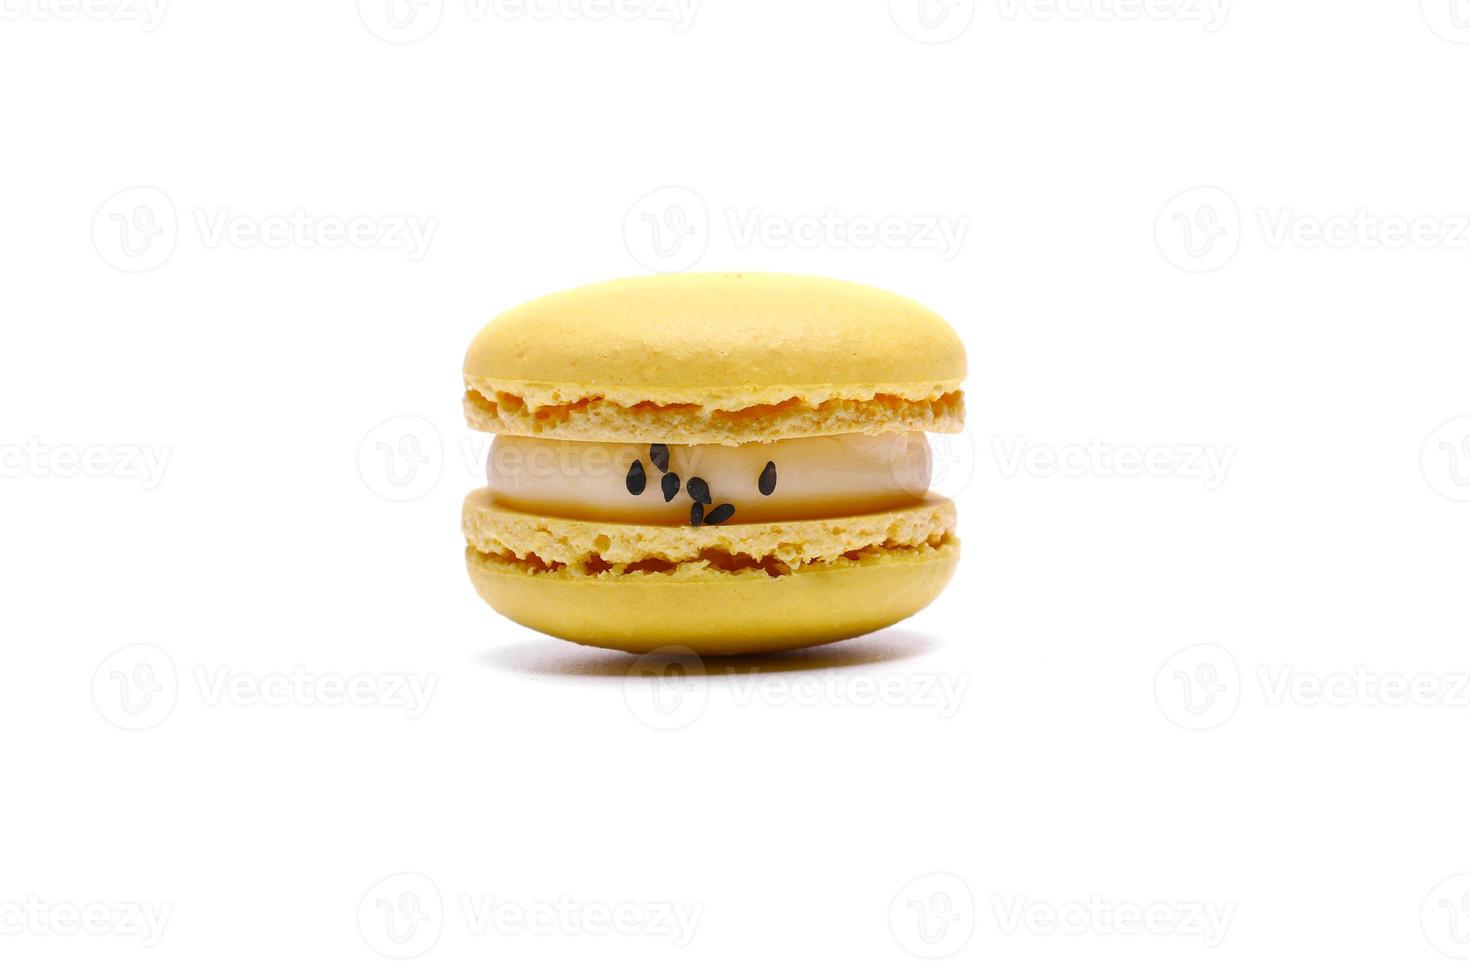 One cake of macaron or macaroon yellow lemon color. Delicious macaroon isolated on white background. French sweet cookie photo